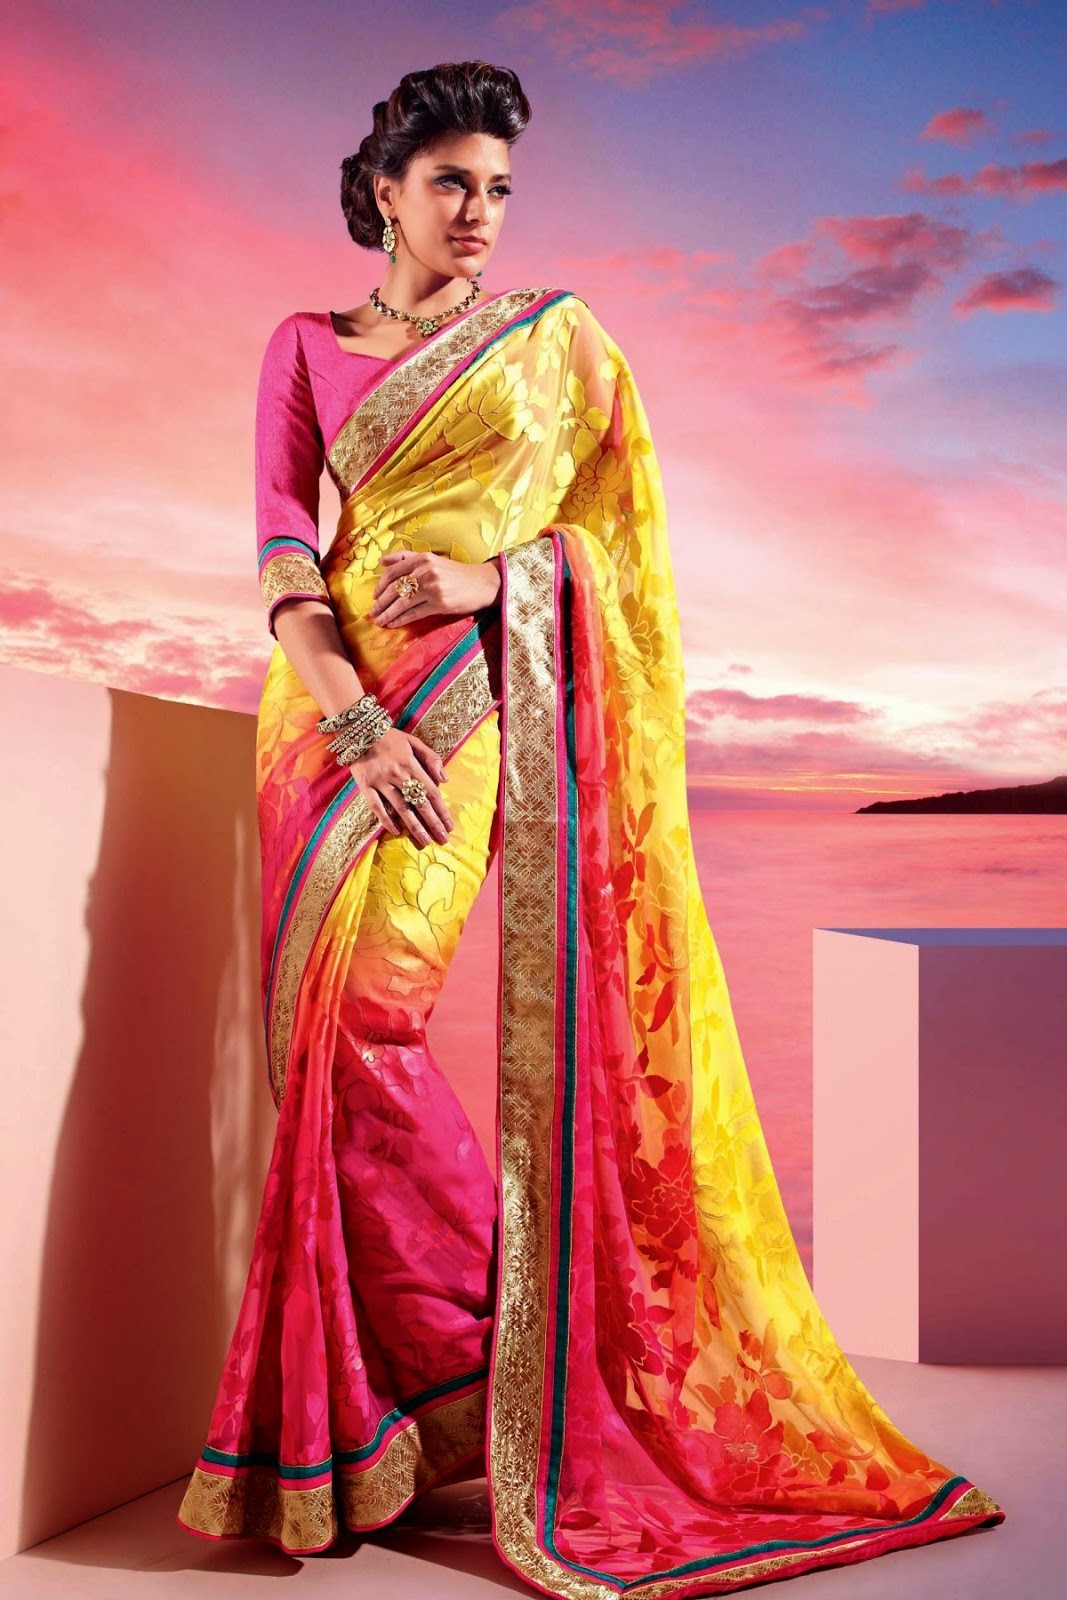 Khoobsurat saree collections, Indian saree collections, Latest saree collections, Sonam kappor collections, zohraa.com saree